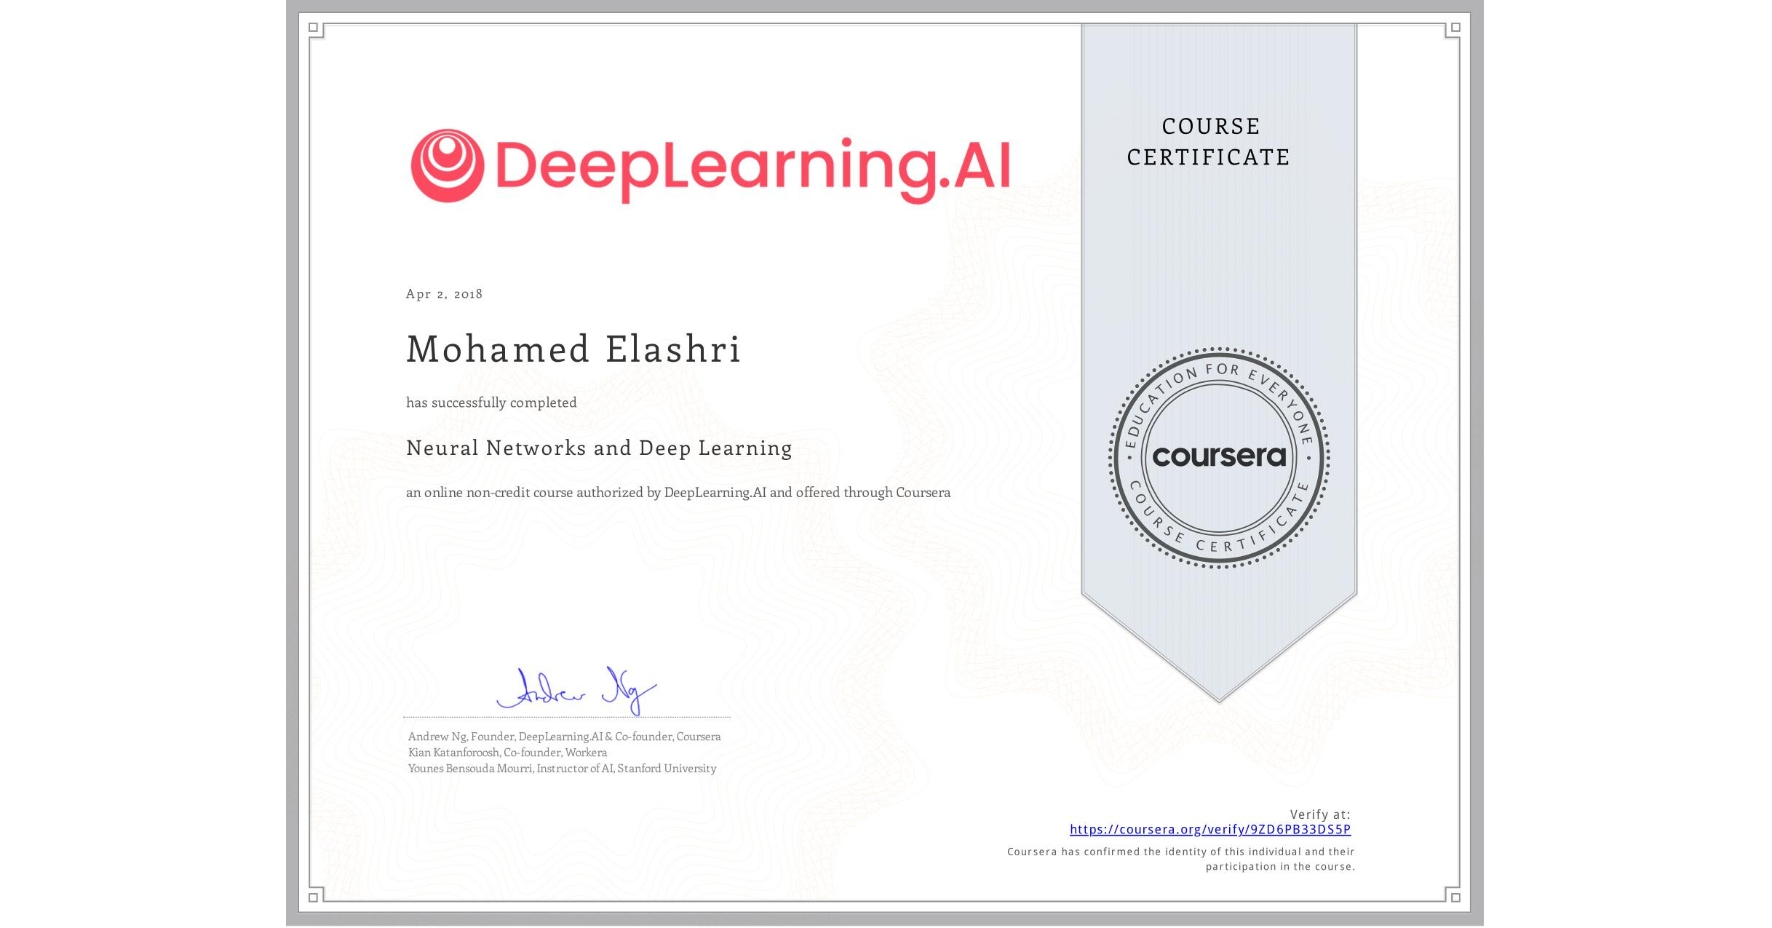 View certificate for Mohamed Elashri, Neural Networks and Deep Learning, an online non-credit course authorized by DeepLearning.AI and offered through Coursera